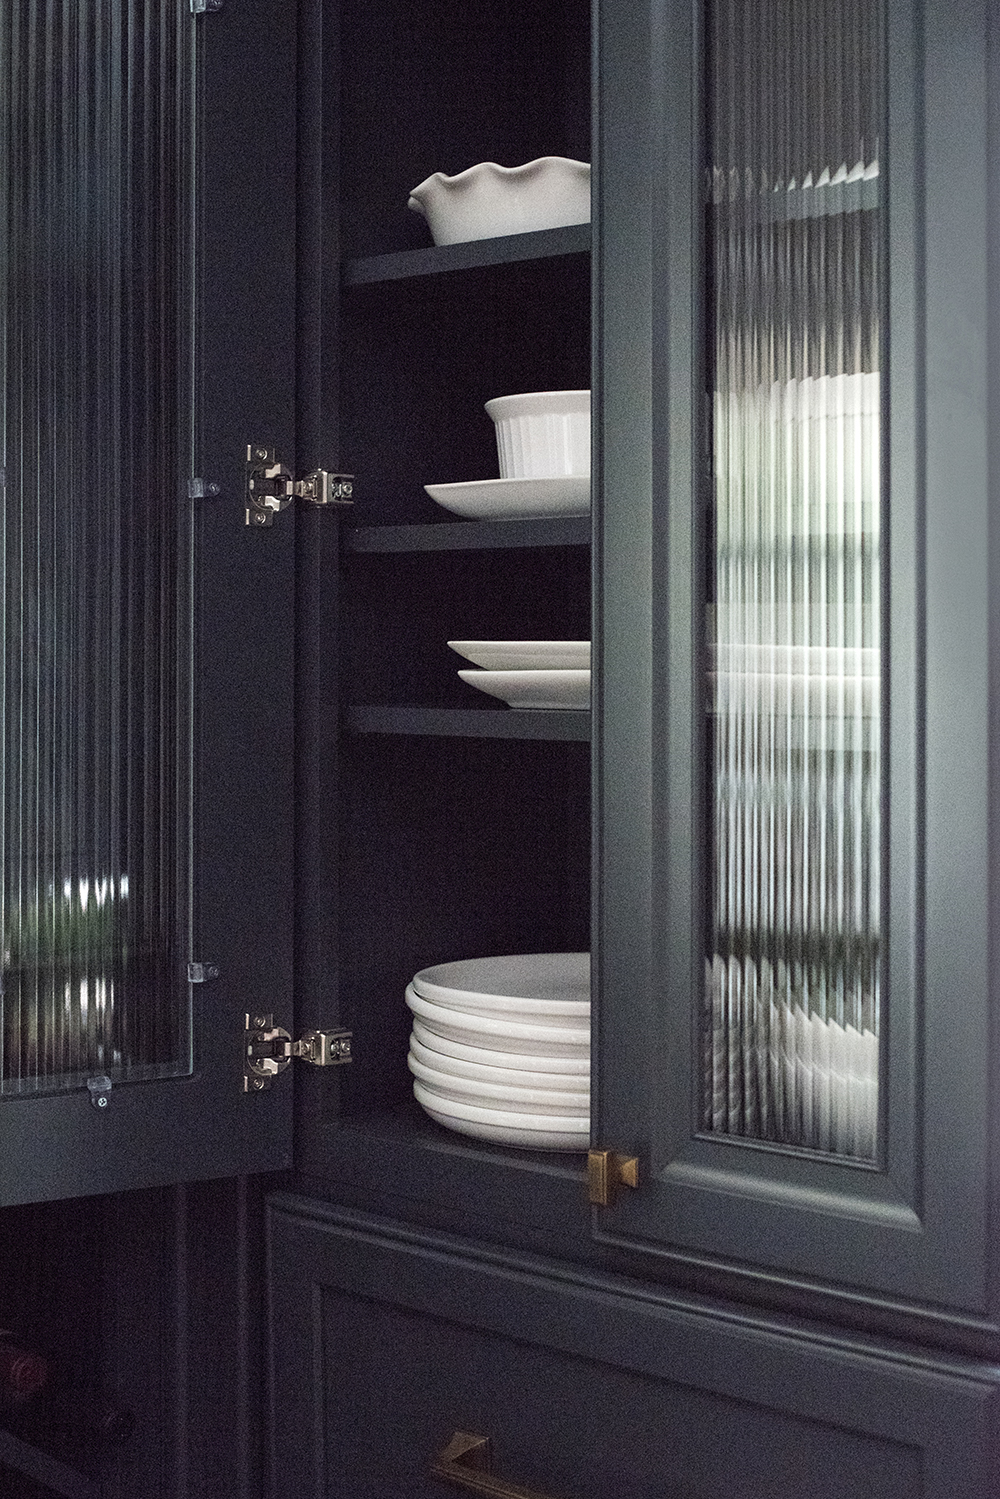 White Dishes in Navy Kitchen Cabinets - Room For Tuesday